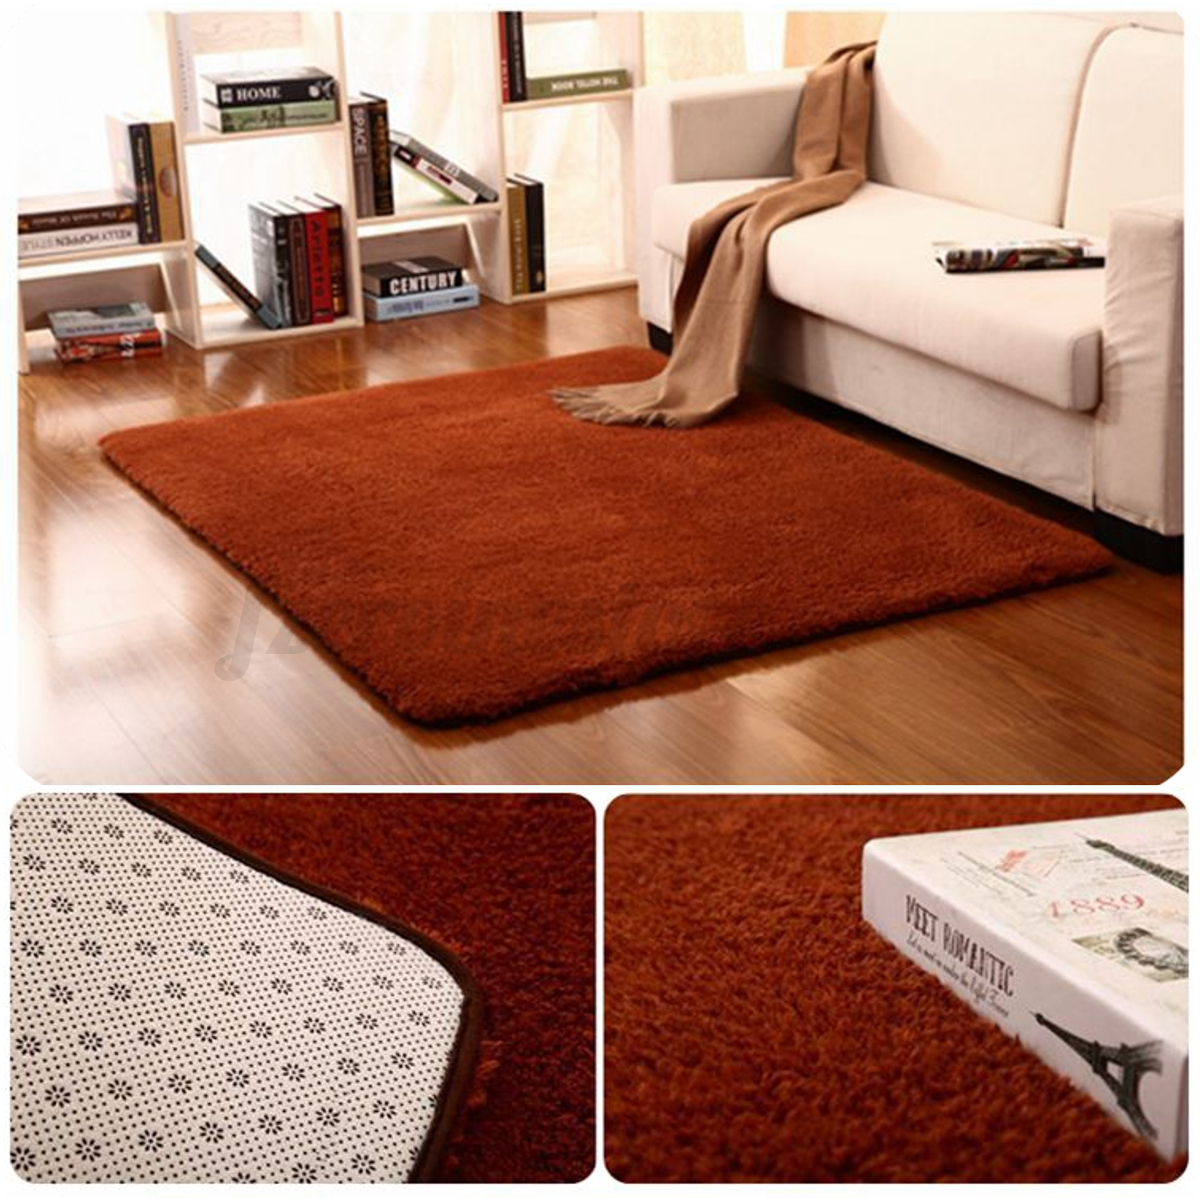 fluffy rugs anti skid shaggy area rug home bedroom dining room carpet floor mat ebay. Black Bedroom Furniture Sets. Home Design Ideas